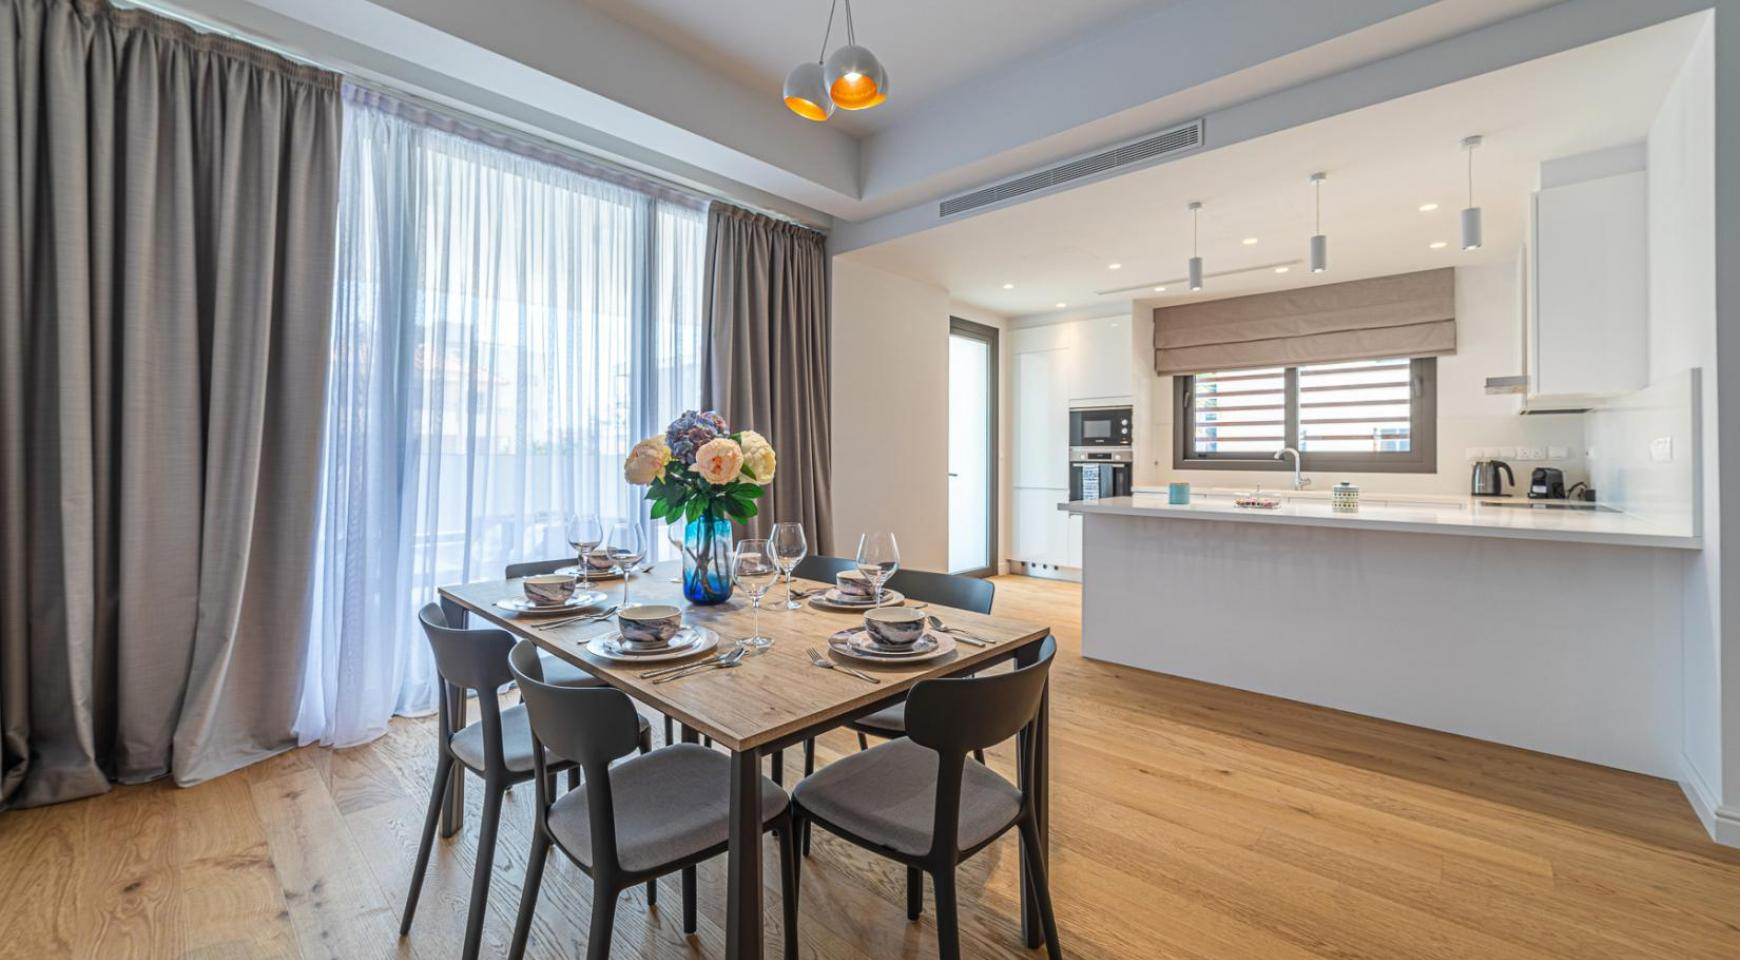 Hortensia Residence, Apt. 103. 3 Bedroom Apartment within a New Complex near the Sea  - 51